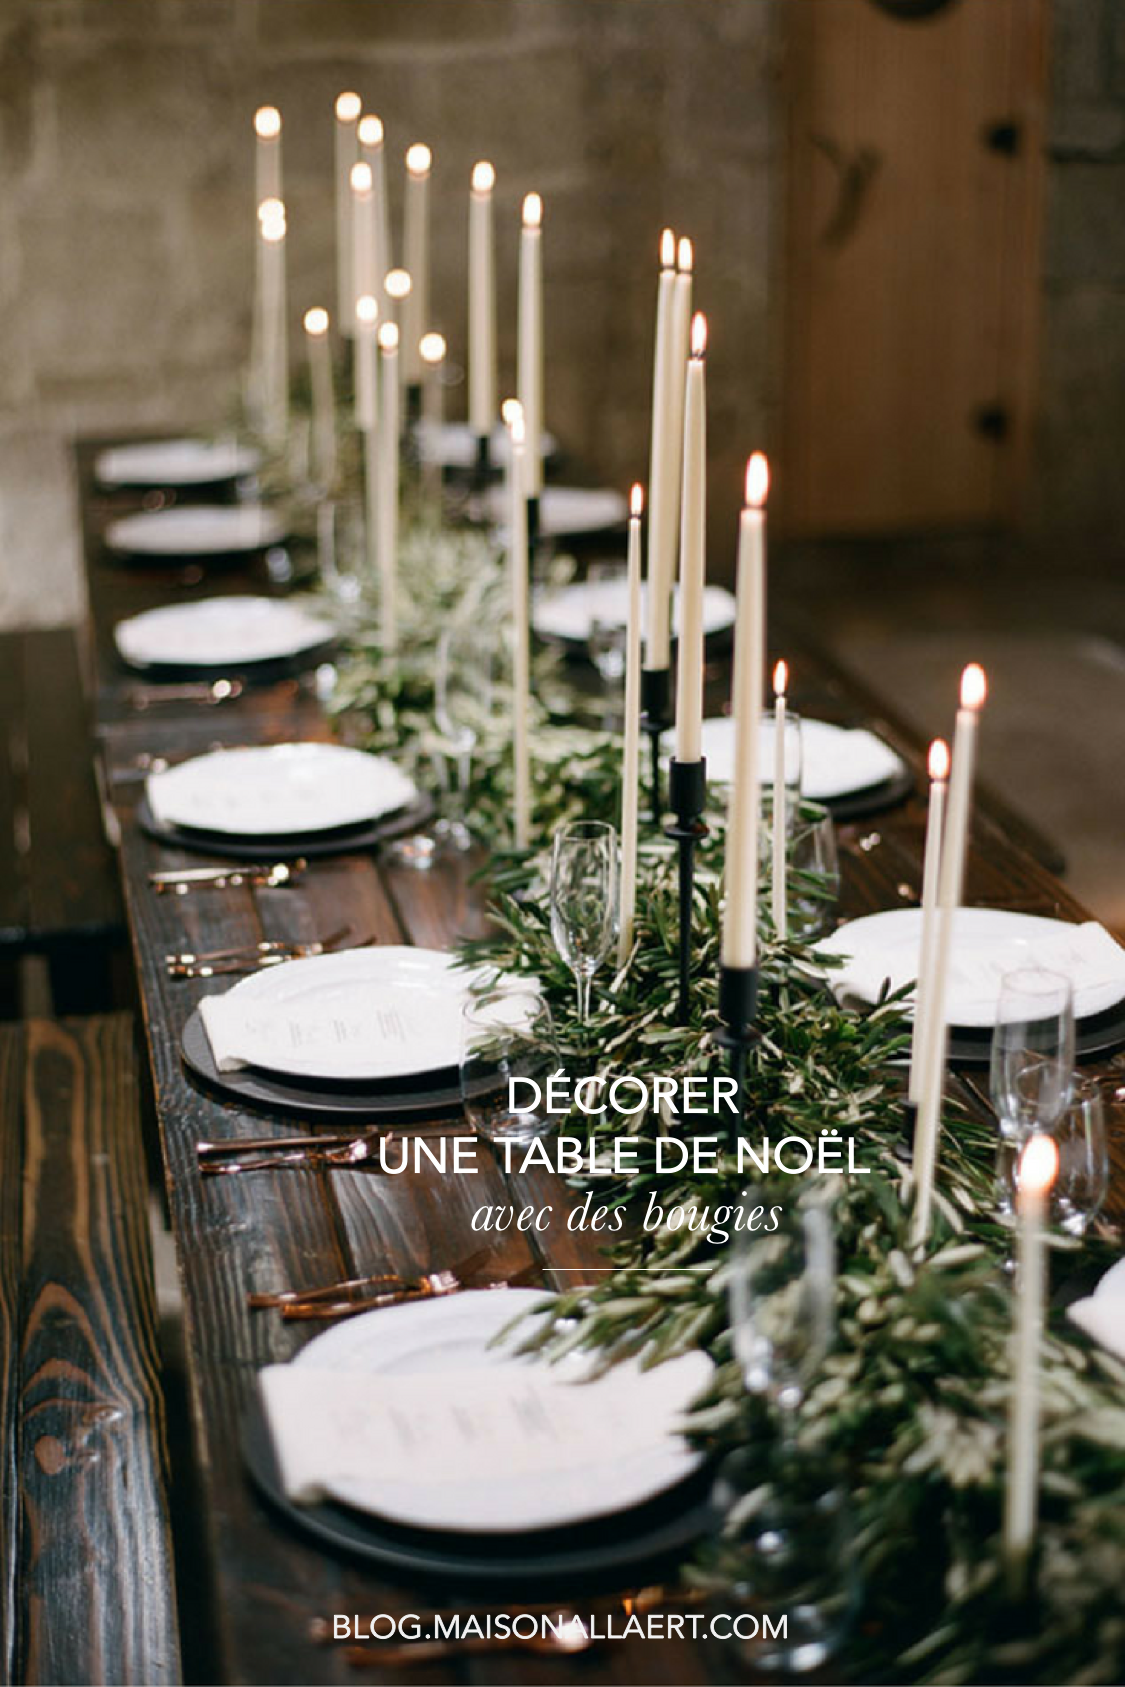 Blog Image De Noel.Comment Decorer Une Table De Noel Naturelle Et Originale